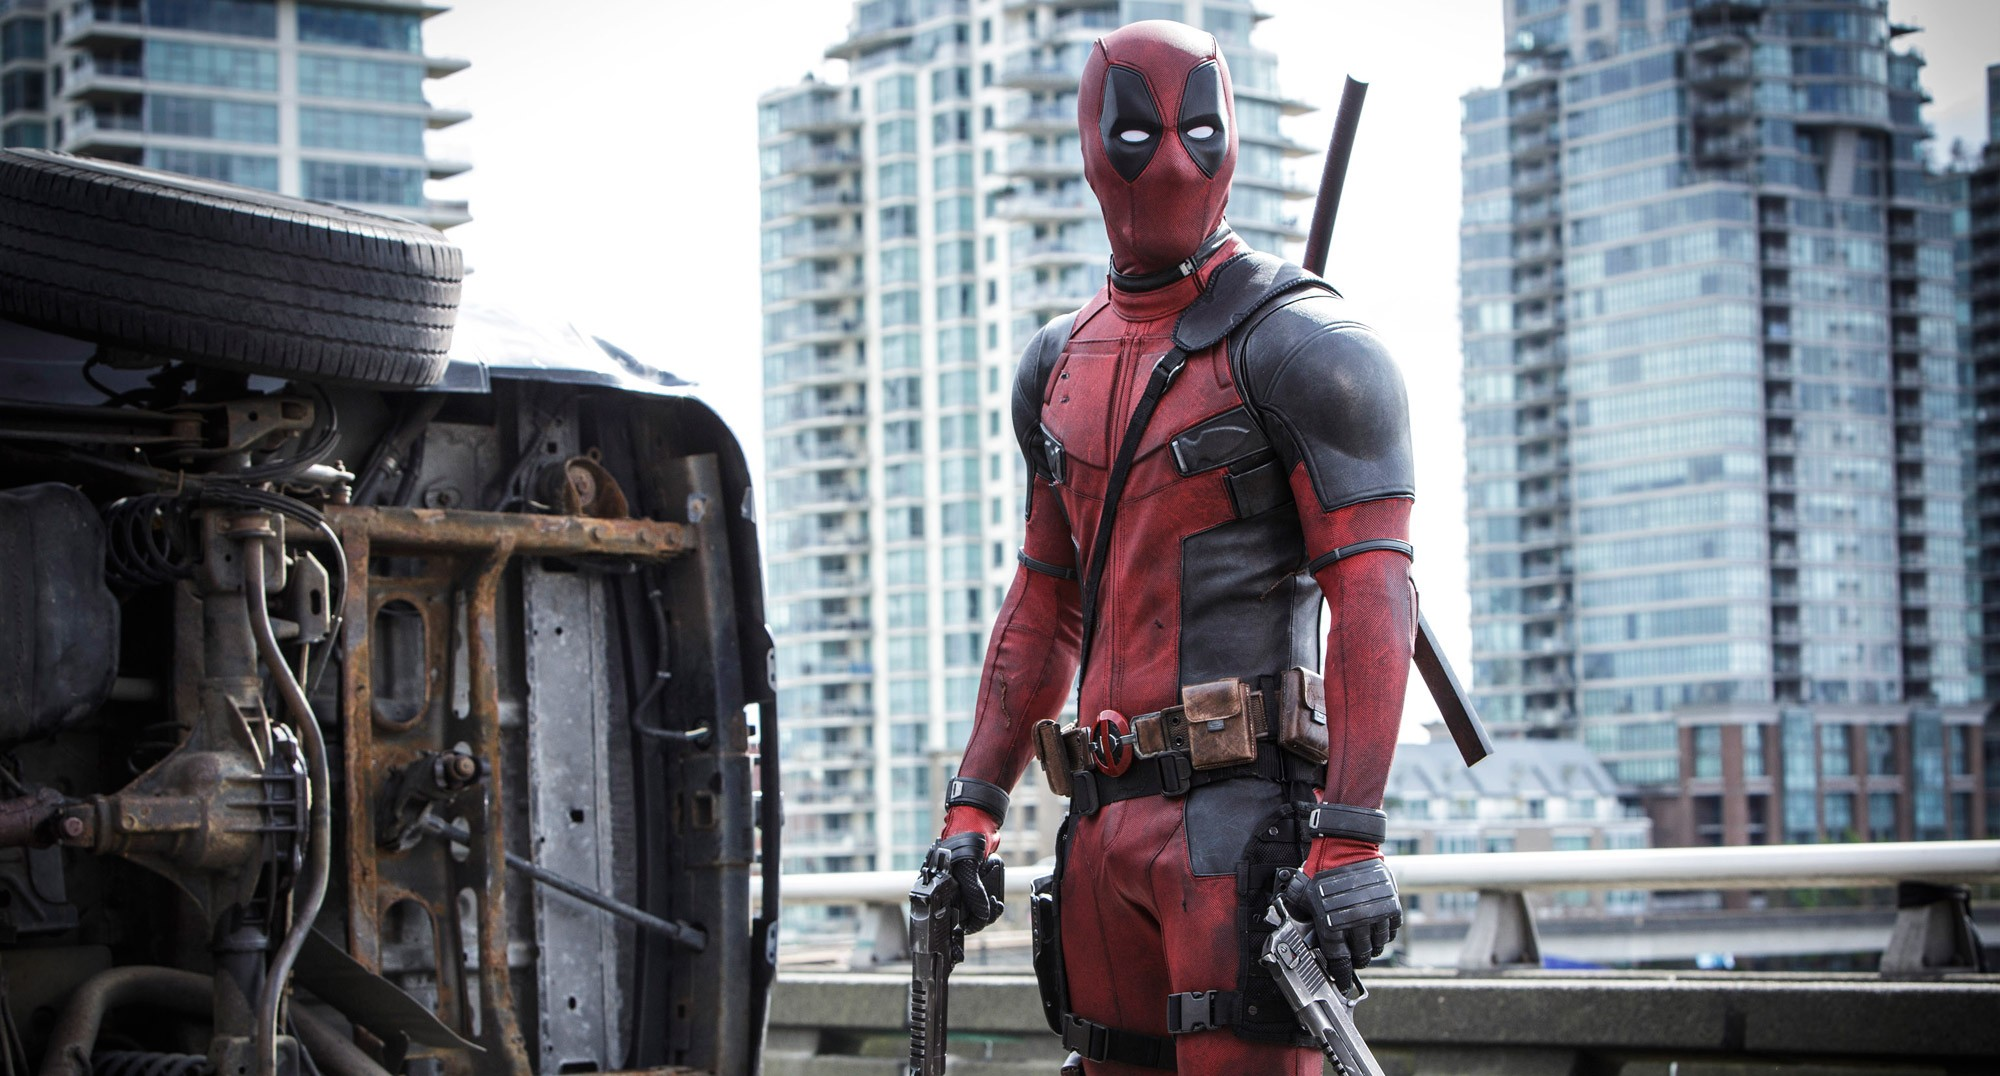 Deadpool 2 is going to start filming soon